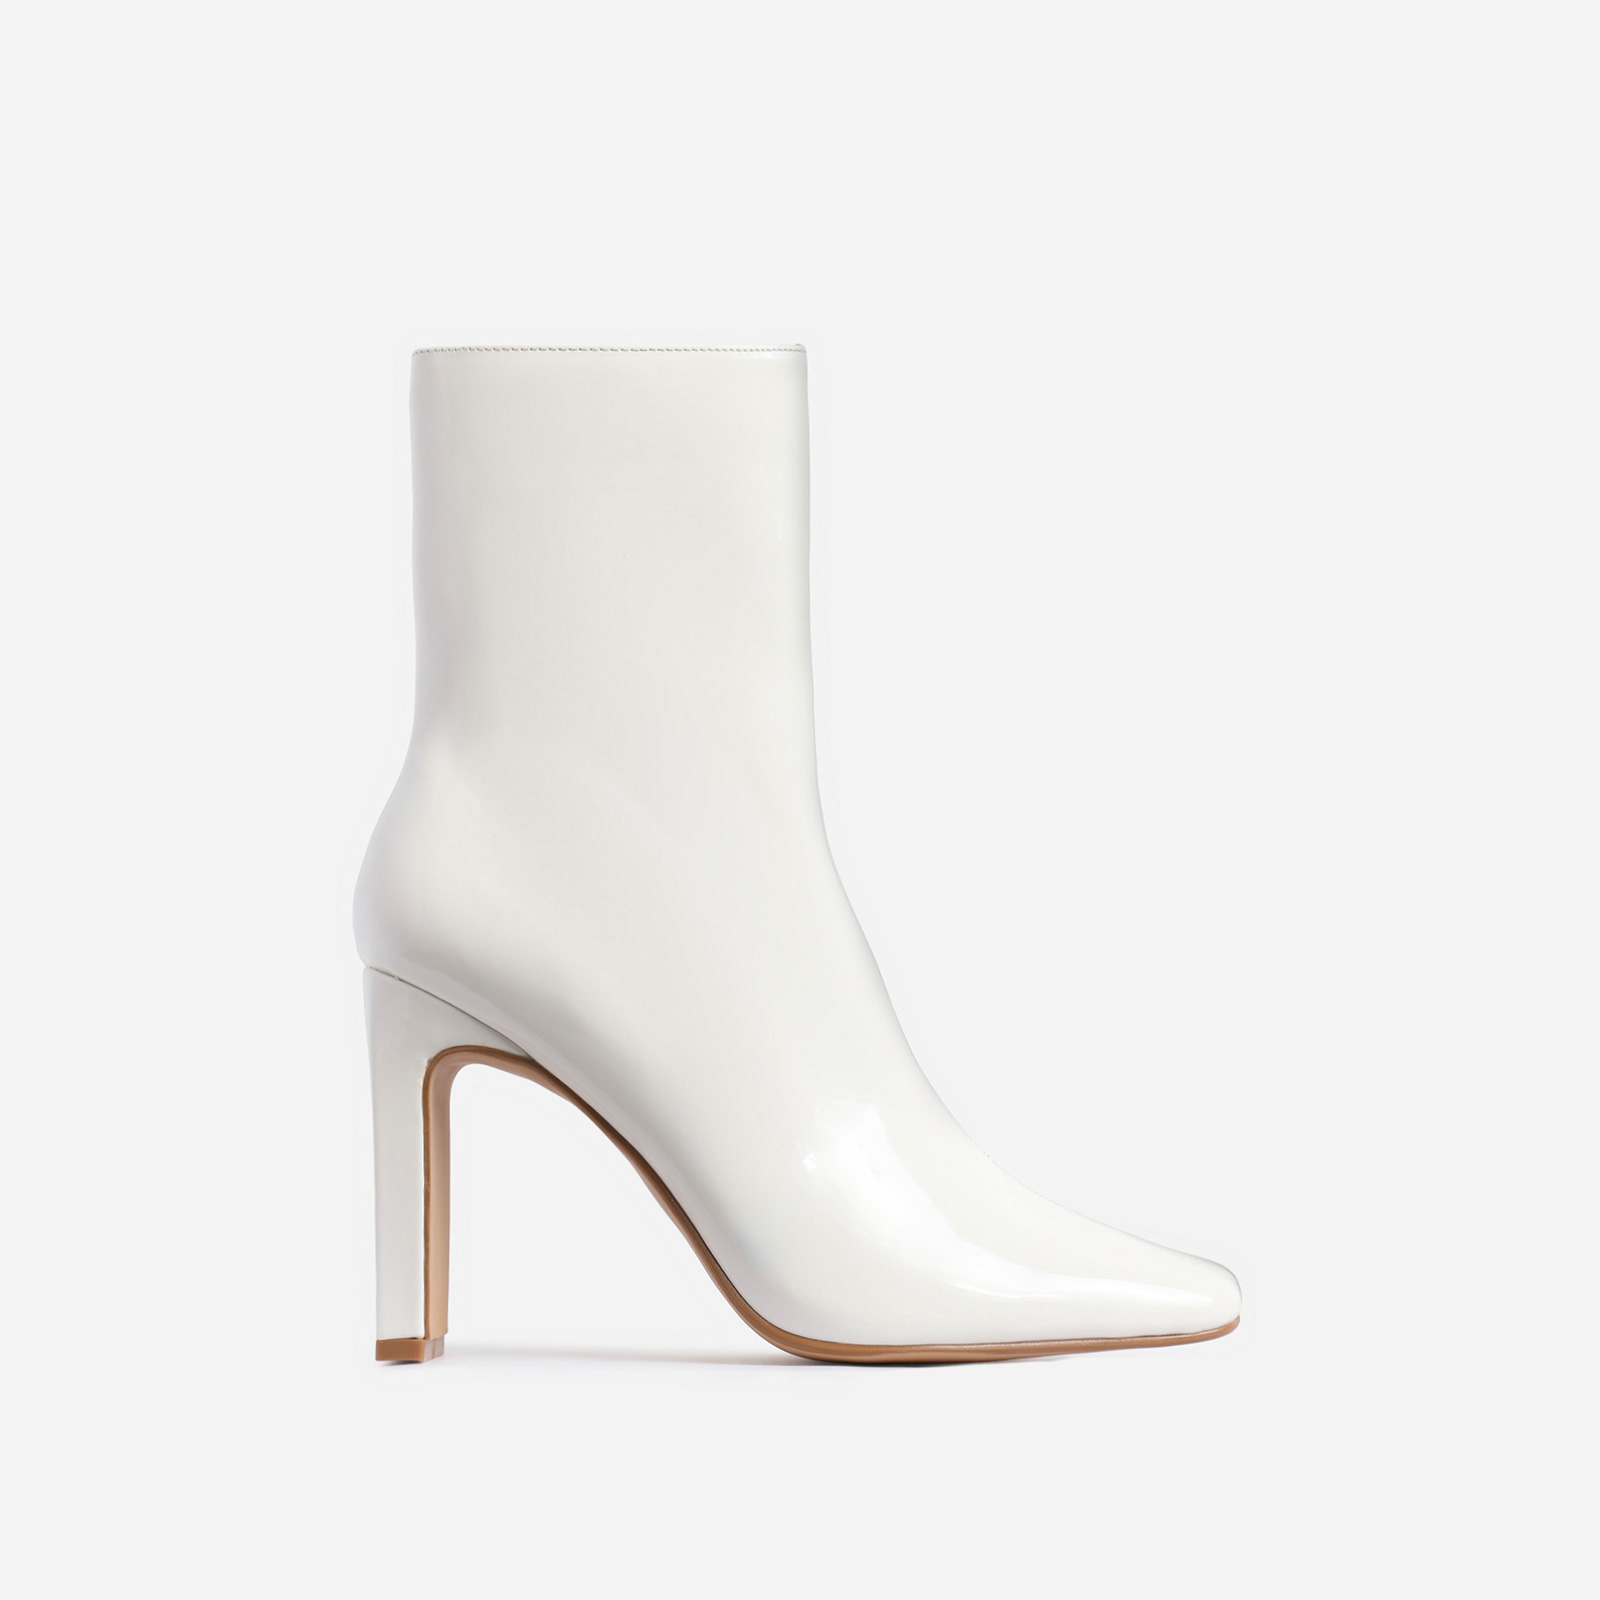 Klass Square Toe Thin Block Heel Ankle Boot In White Faux Leather